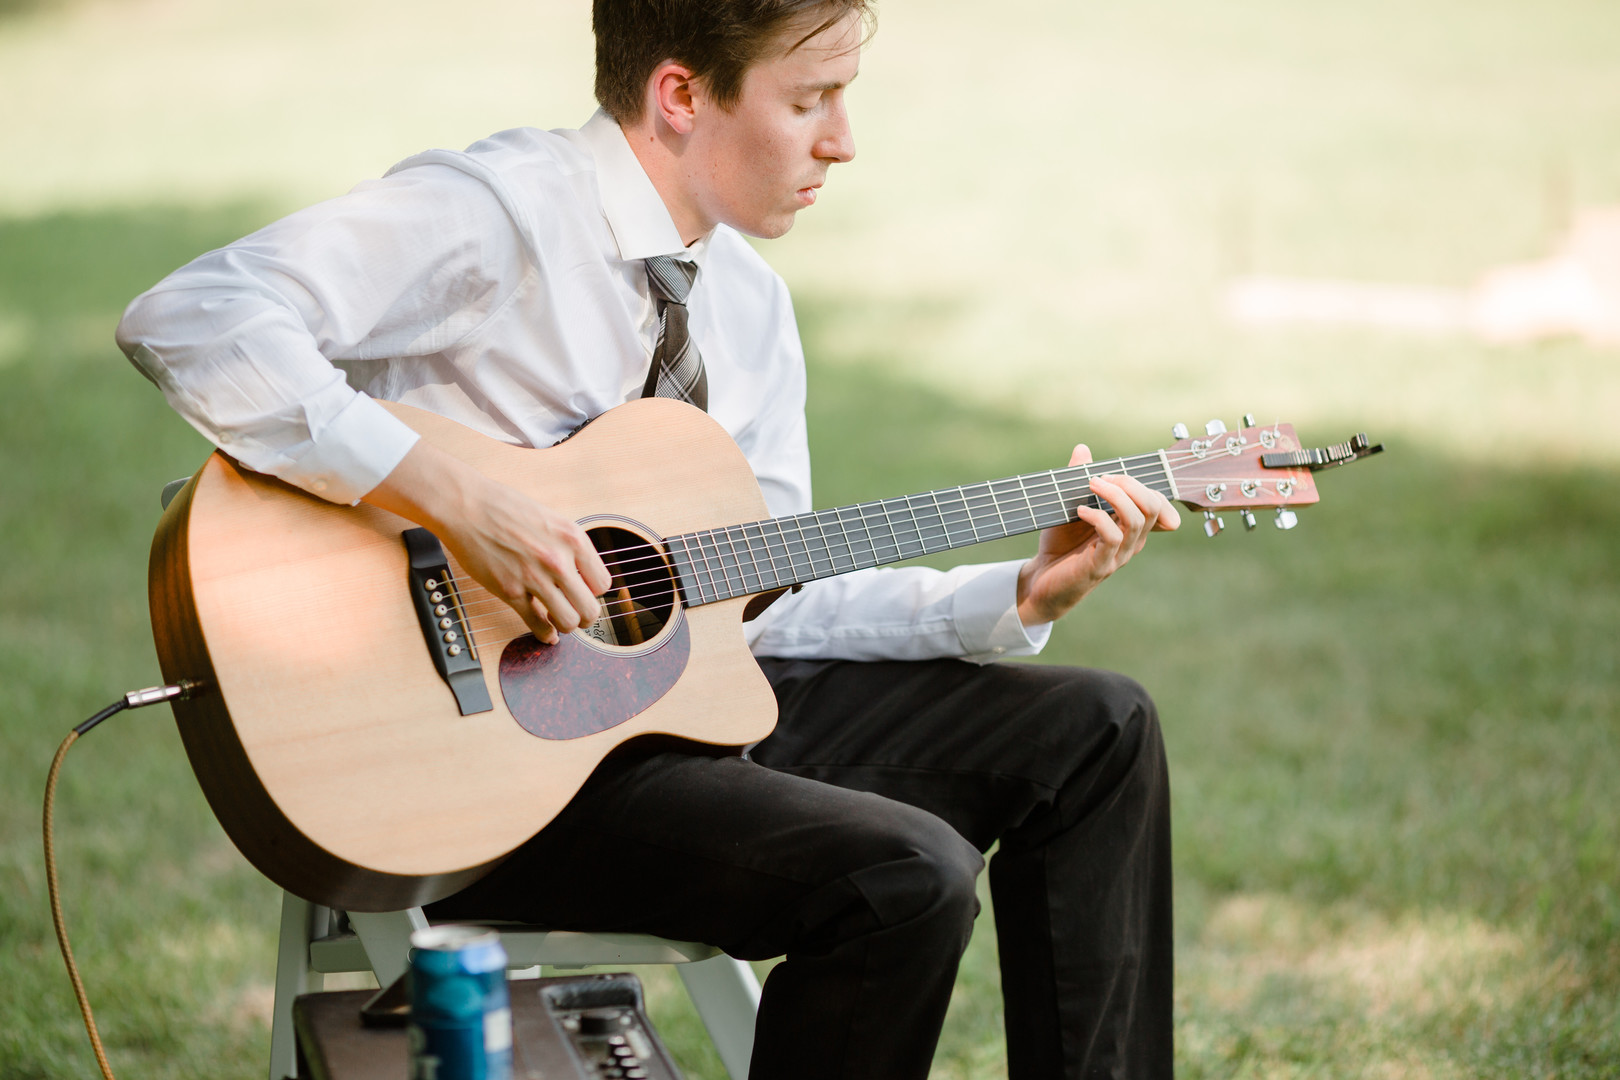 Wedding musician: Rustic country wedding in Minooka, IL captured by Katie Brsan Photography. Visit CHItheeWED.com for more wedding inspiration!